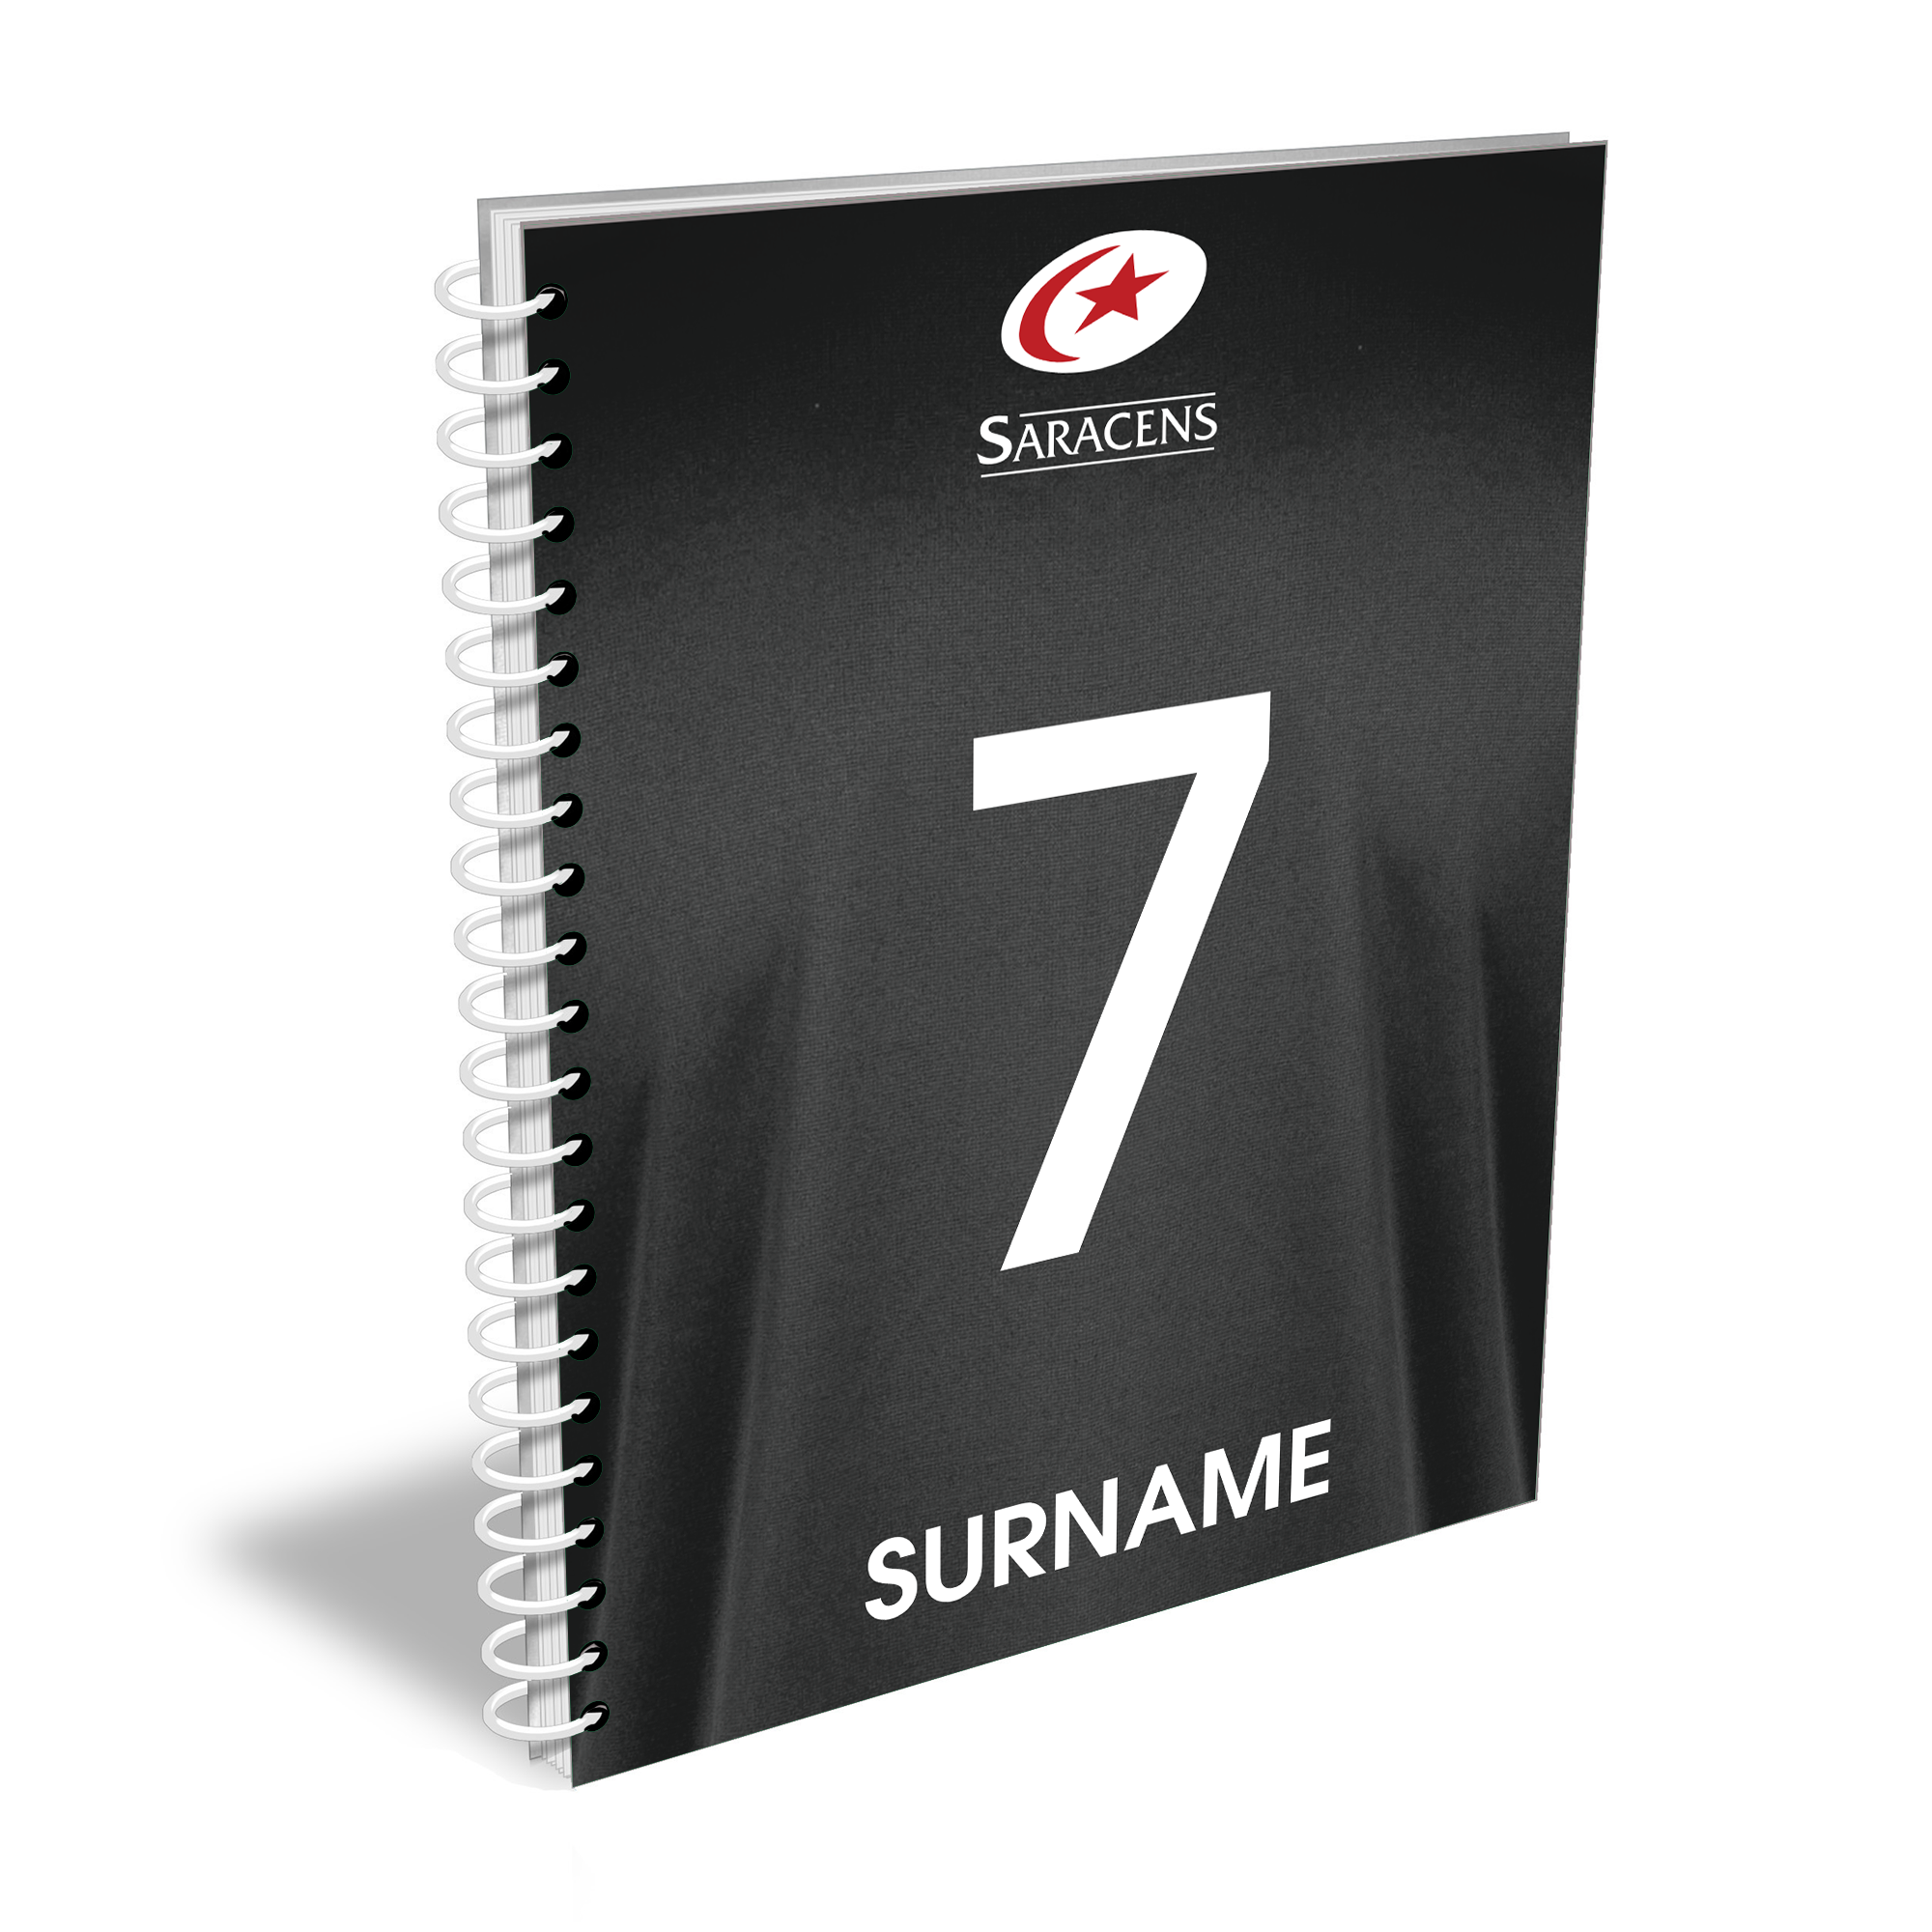 Saracens Shirt Notebook